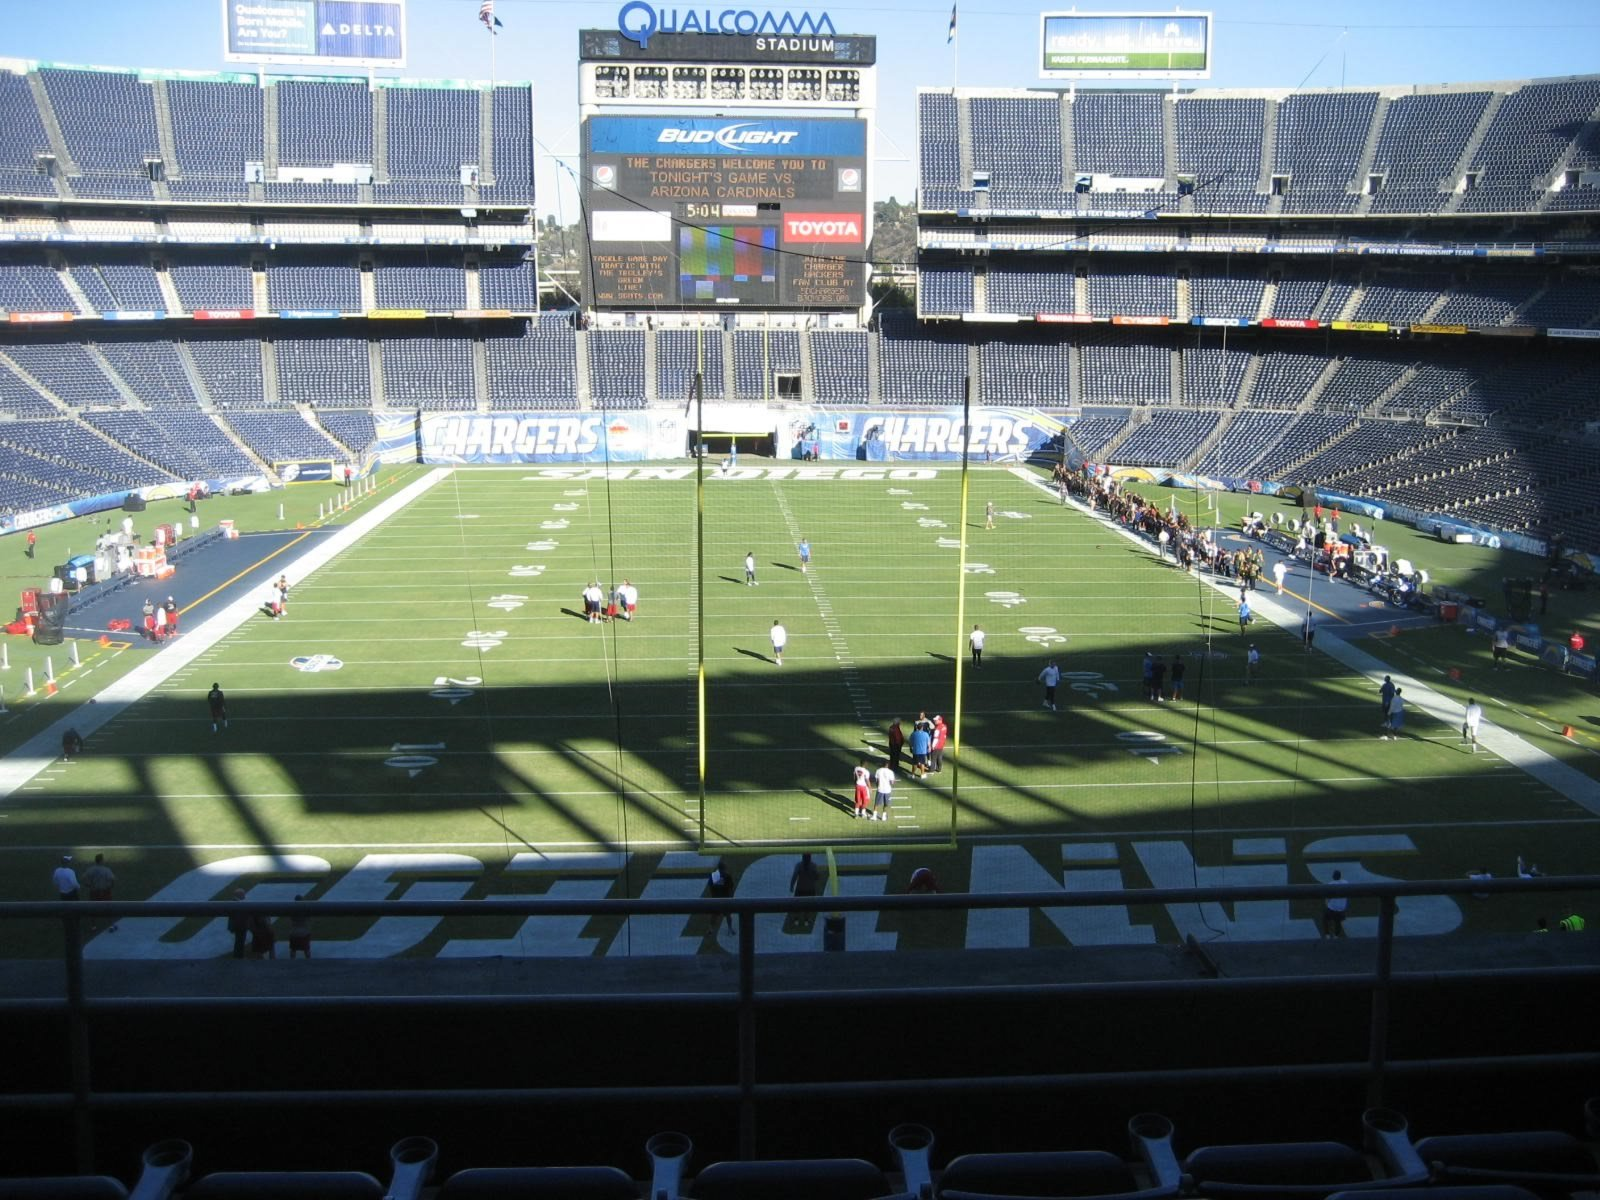 Seat View for Qualcomm Stadium Loge 21, Row 5, Seat 4